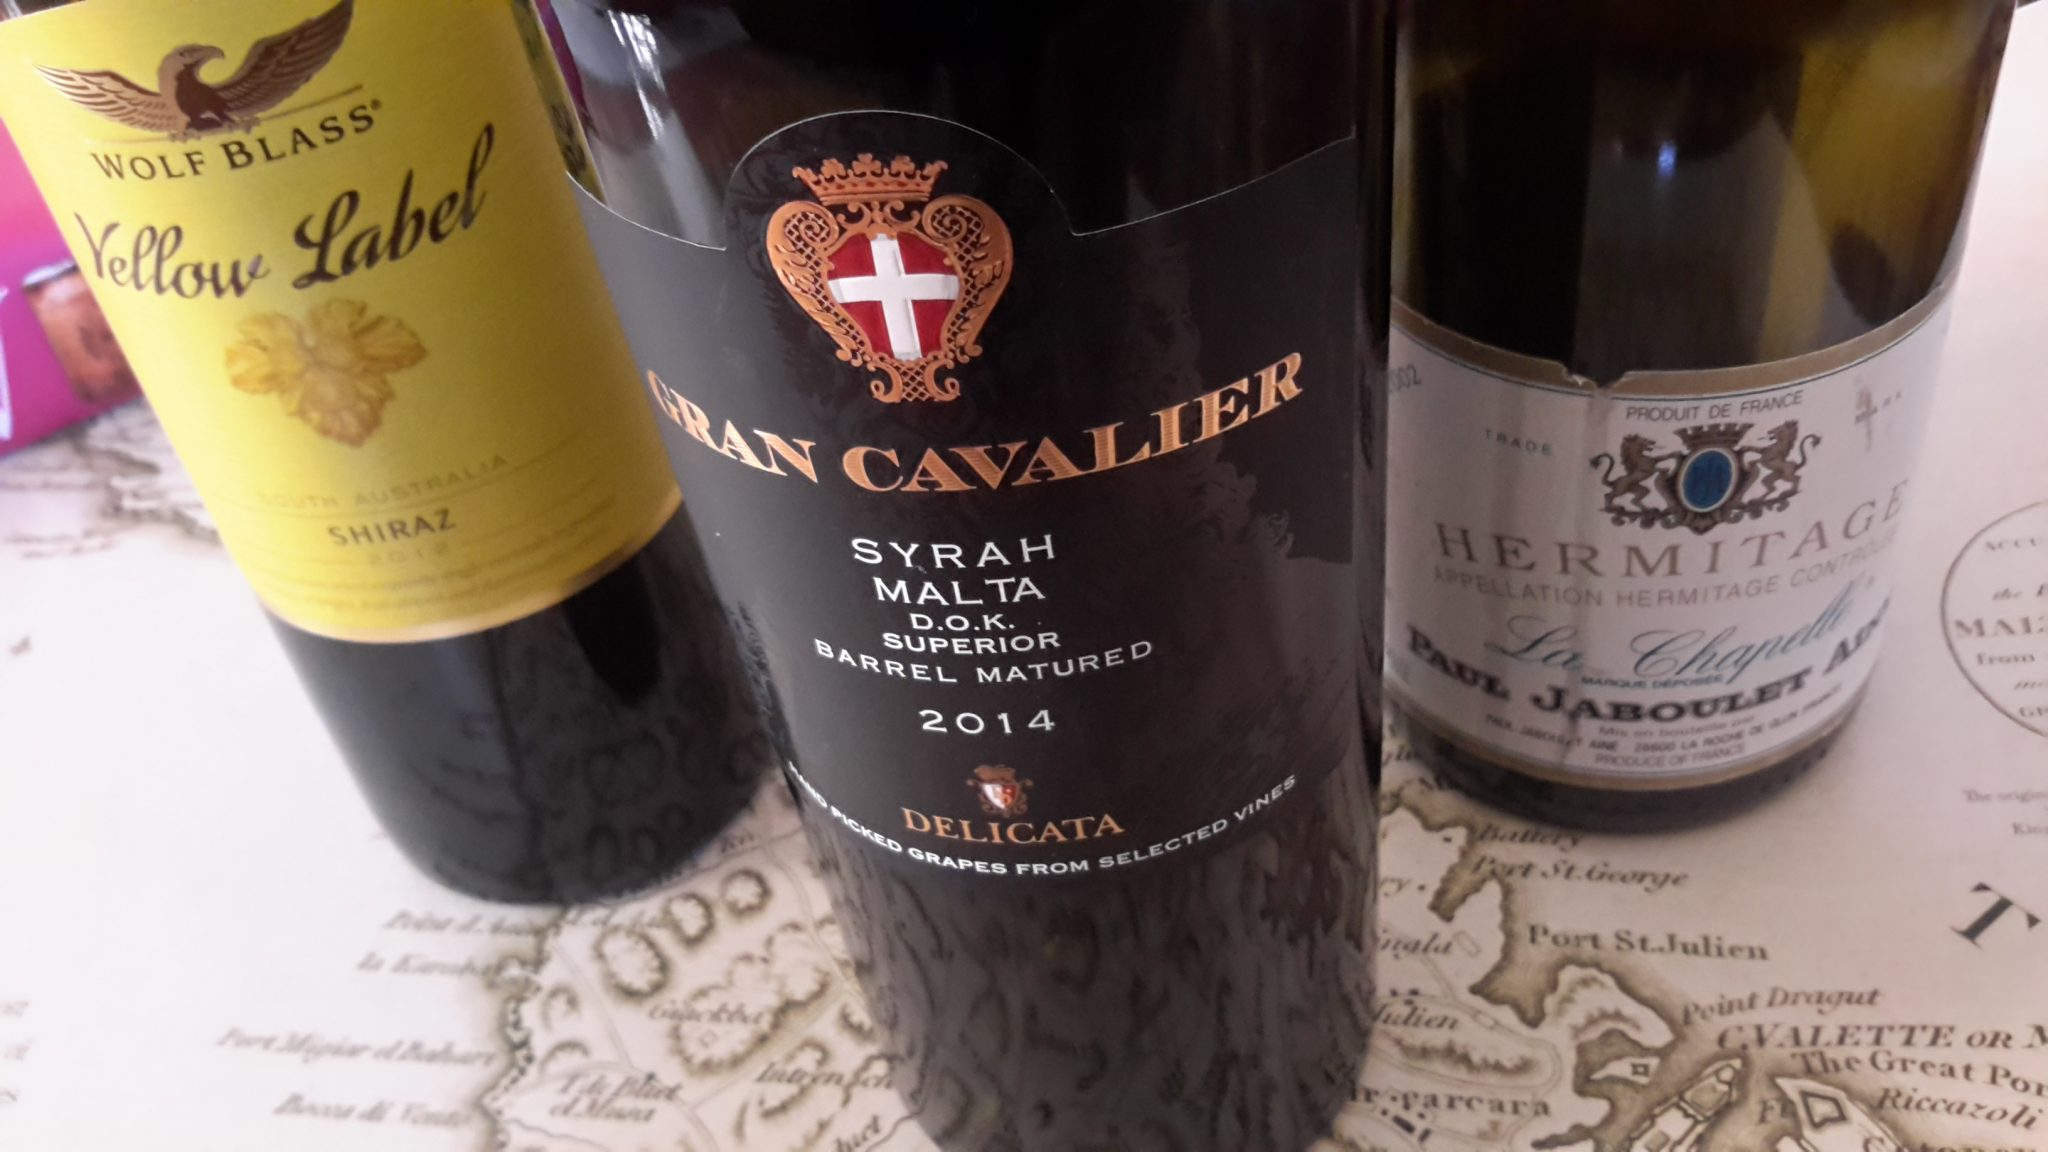 World-class Syrah wine from Malta